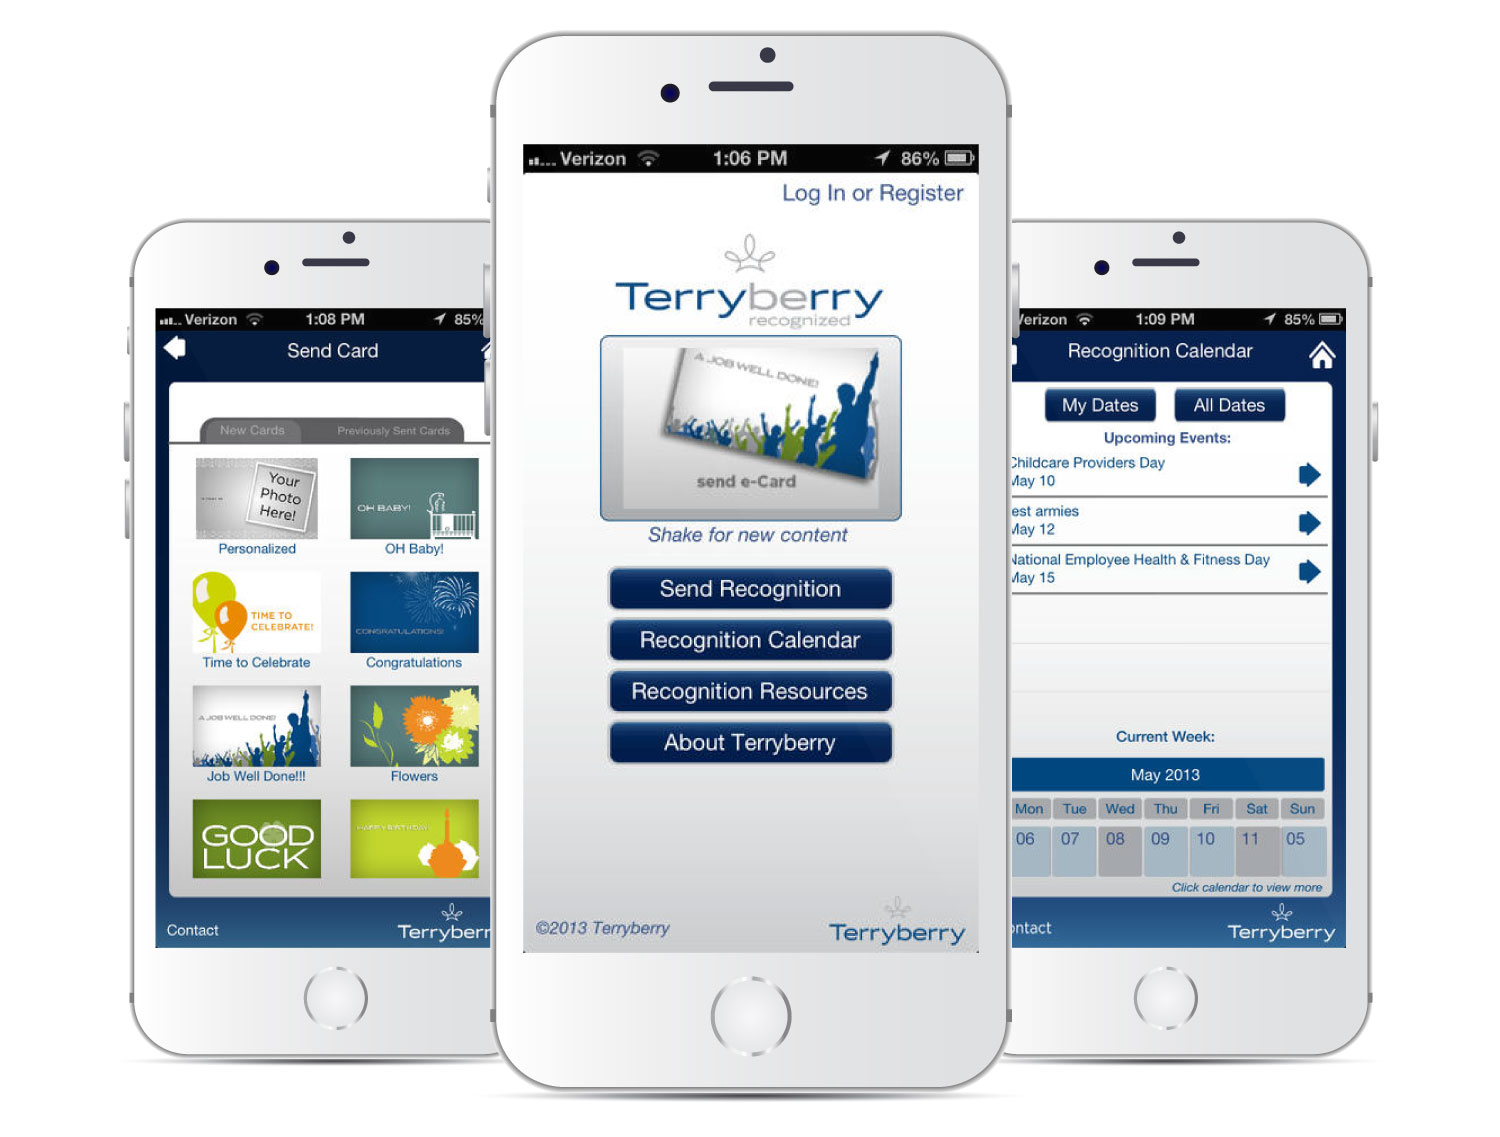 TerryBerry Recognized Mobile App